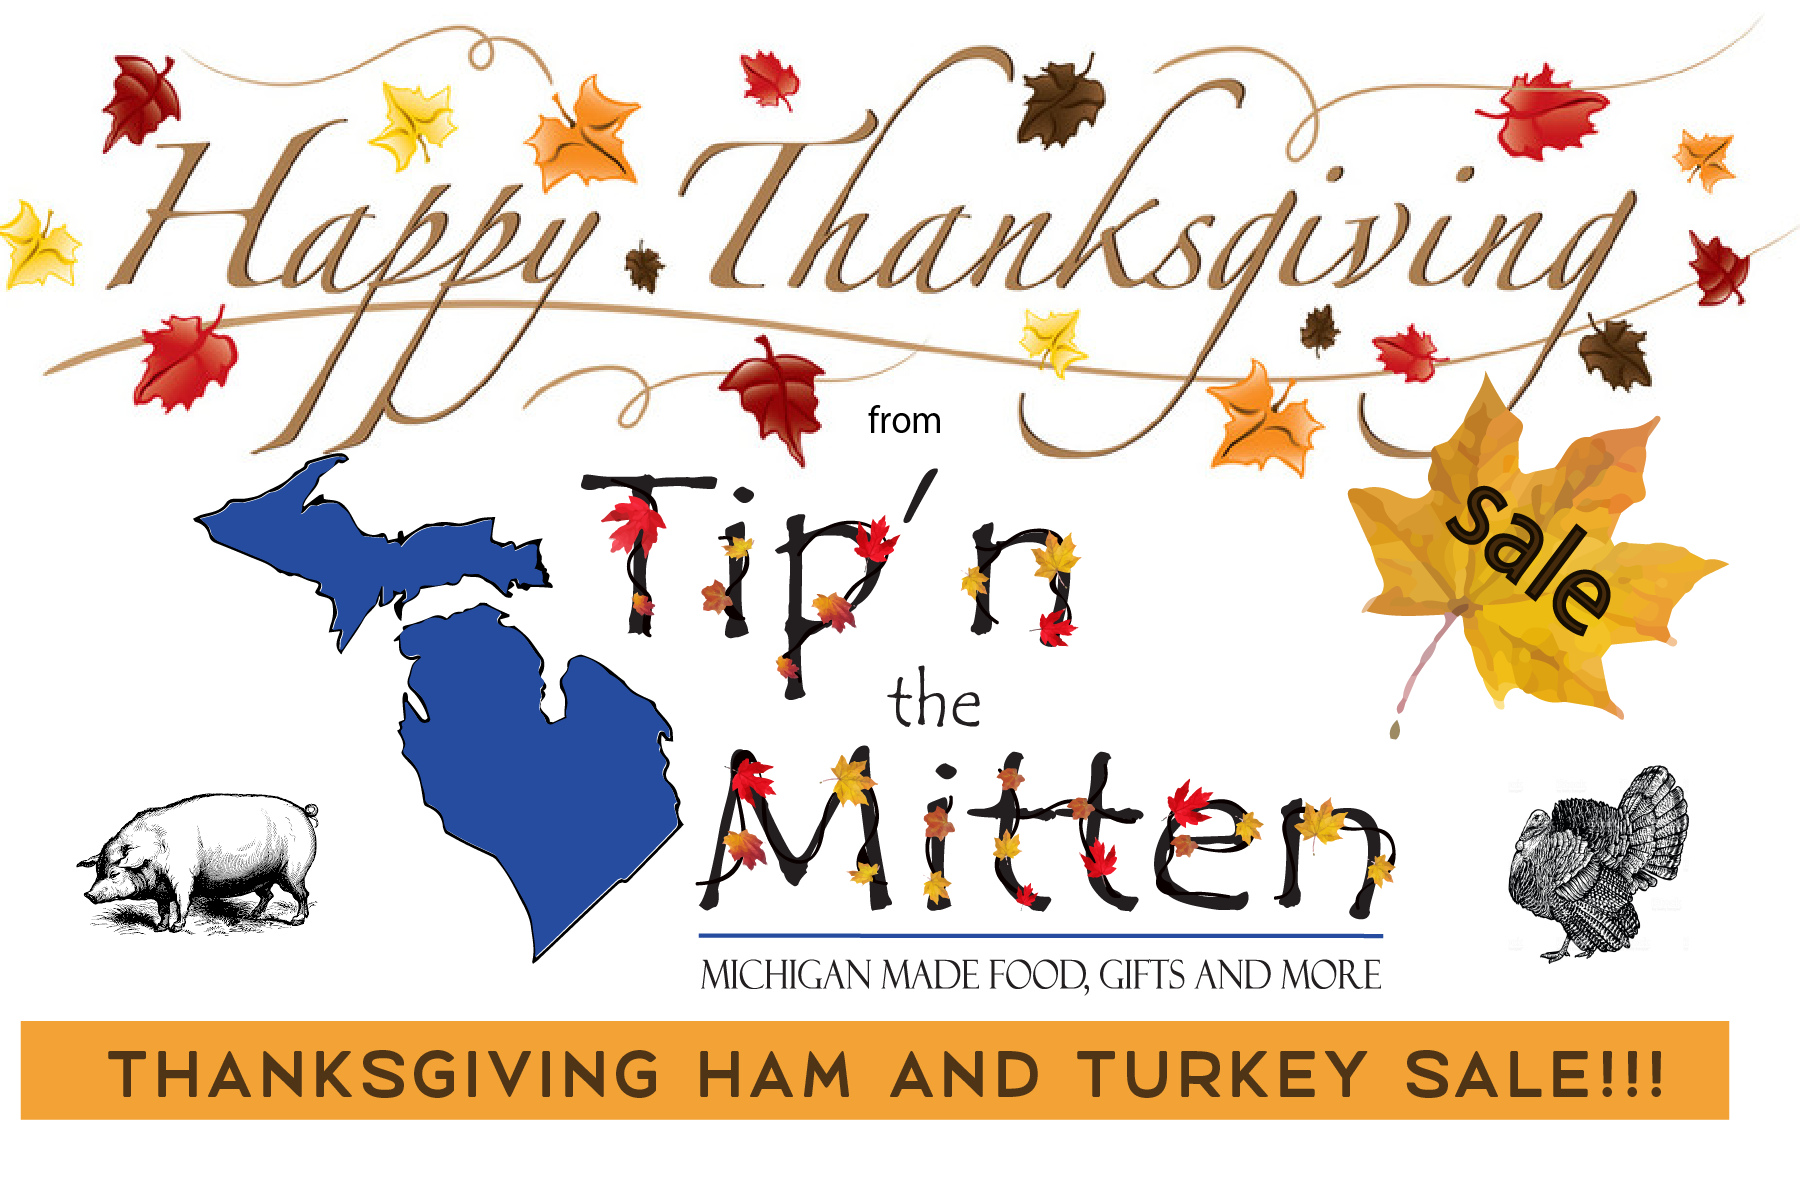 Thanksgiving Dinner Deals from Tip'n the Mitten